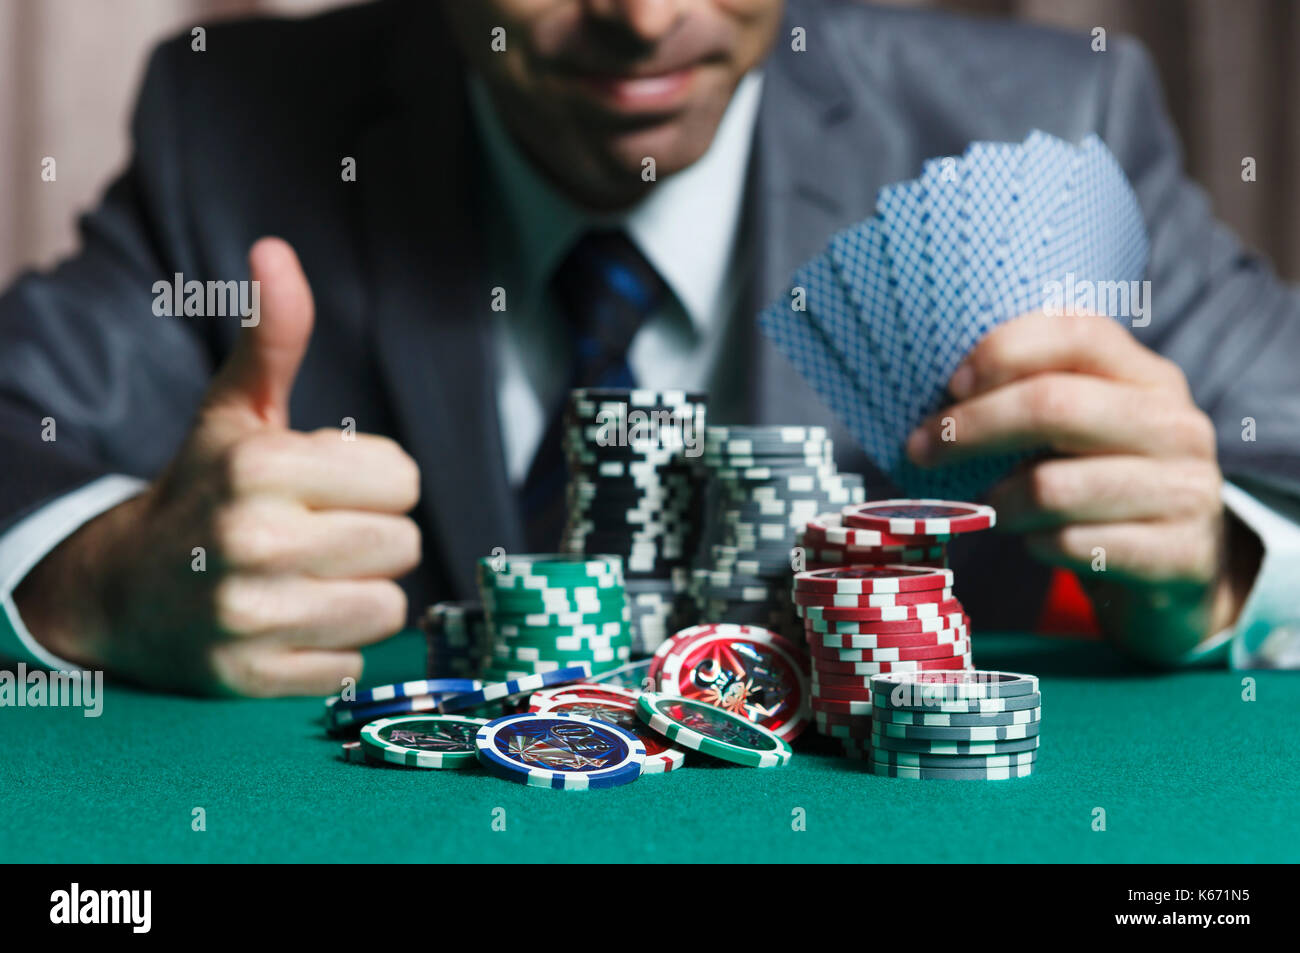 Blackjack In A Casino Man With Cards Wins Gets Rich, Shows A Big Like - Stock Image